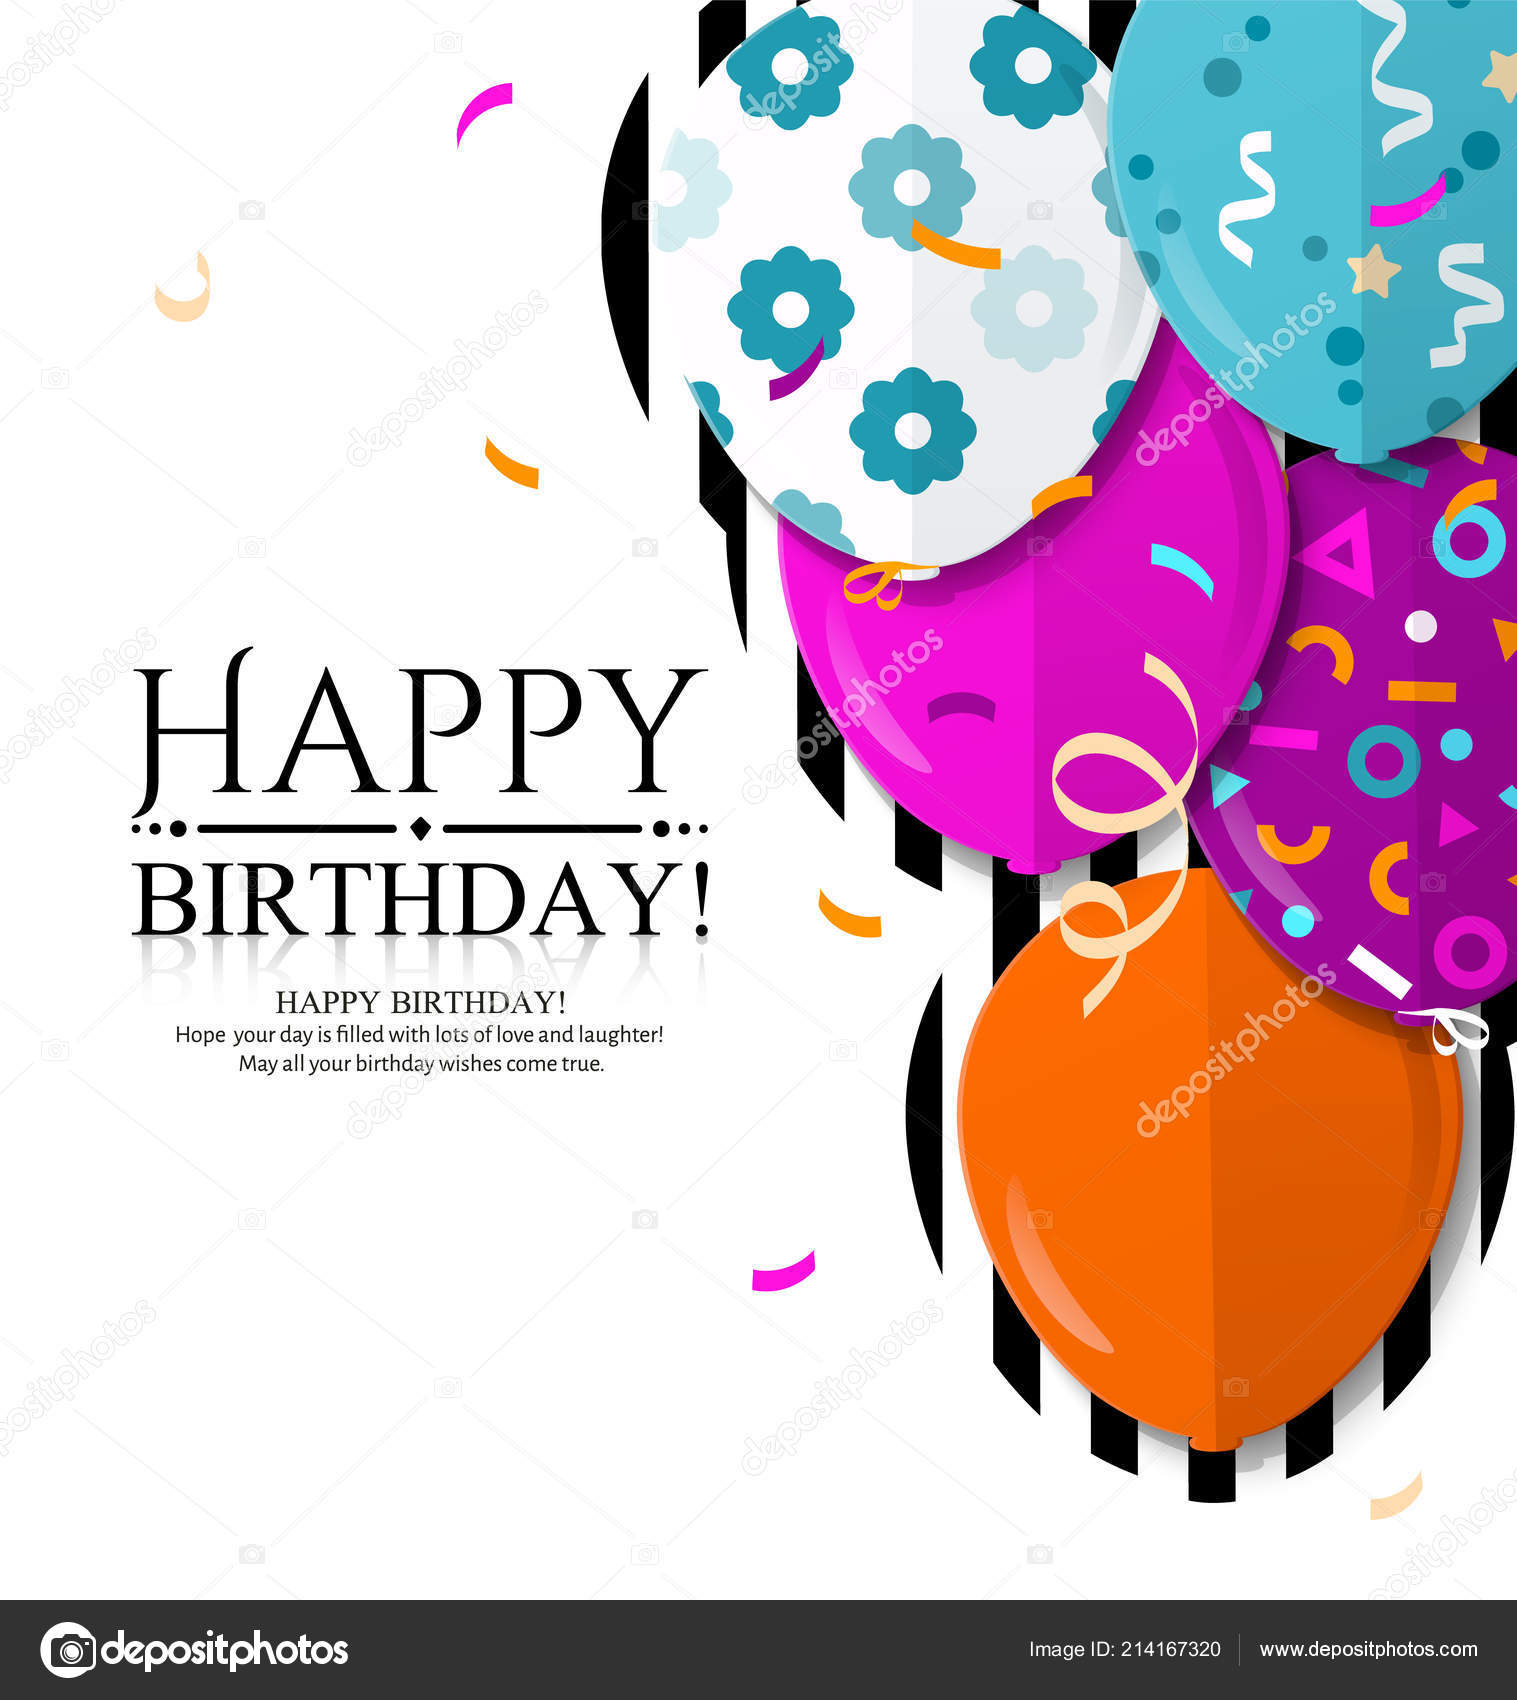 Happy Birthday Invitation Card With Colorful Balloons In